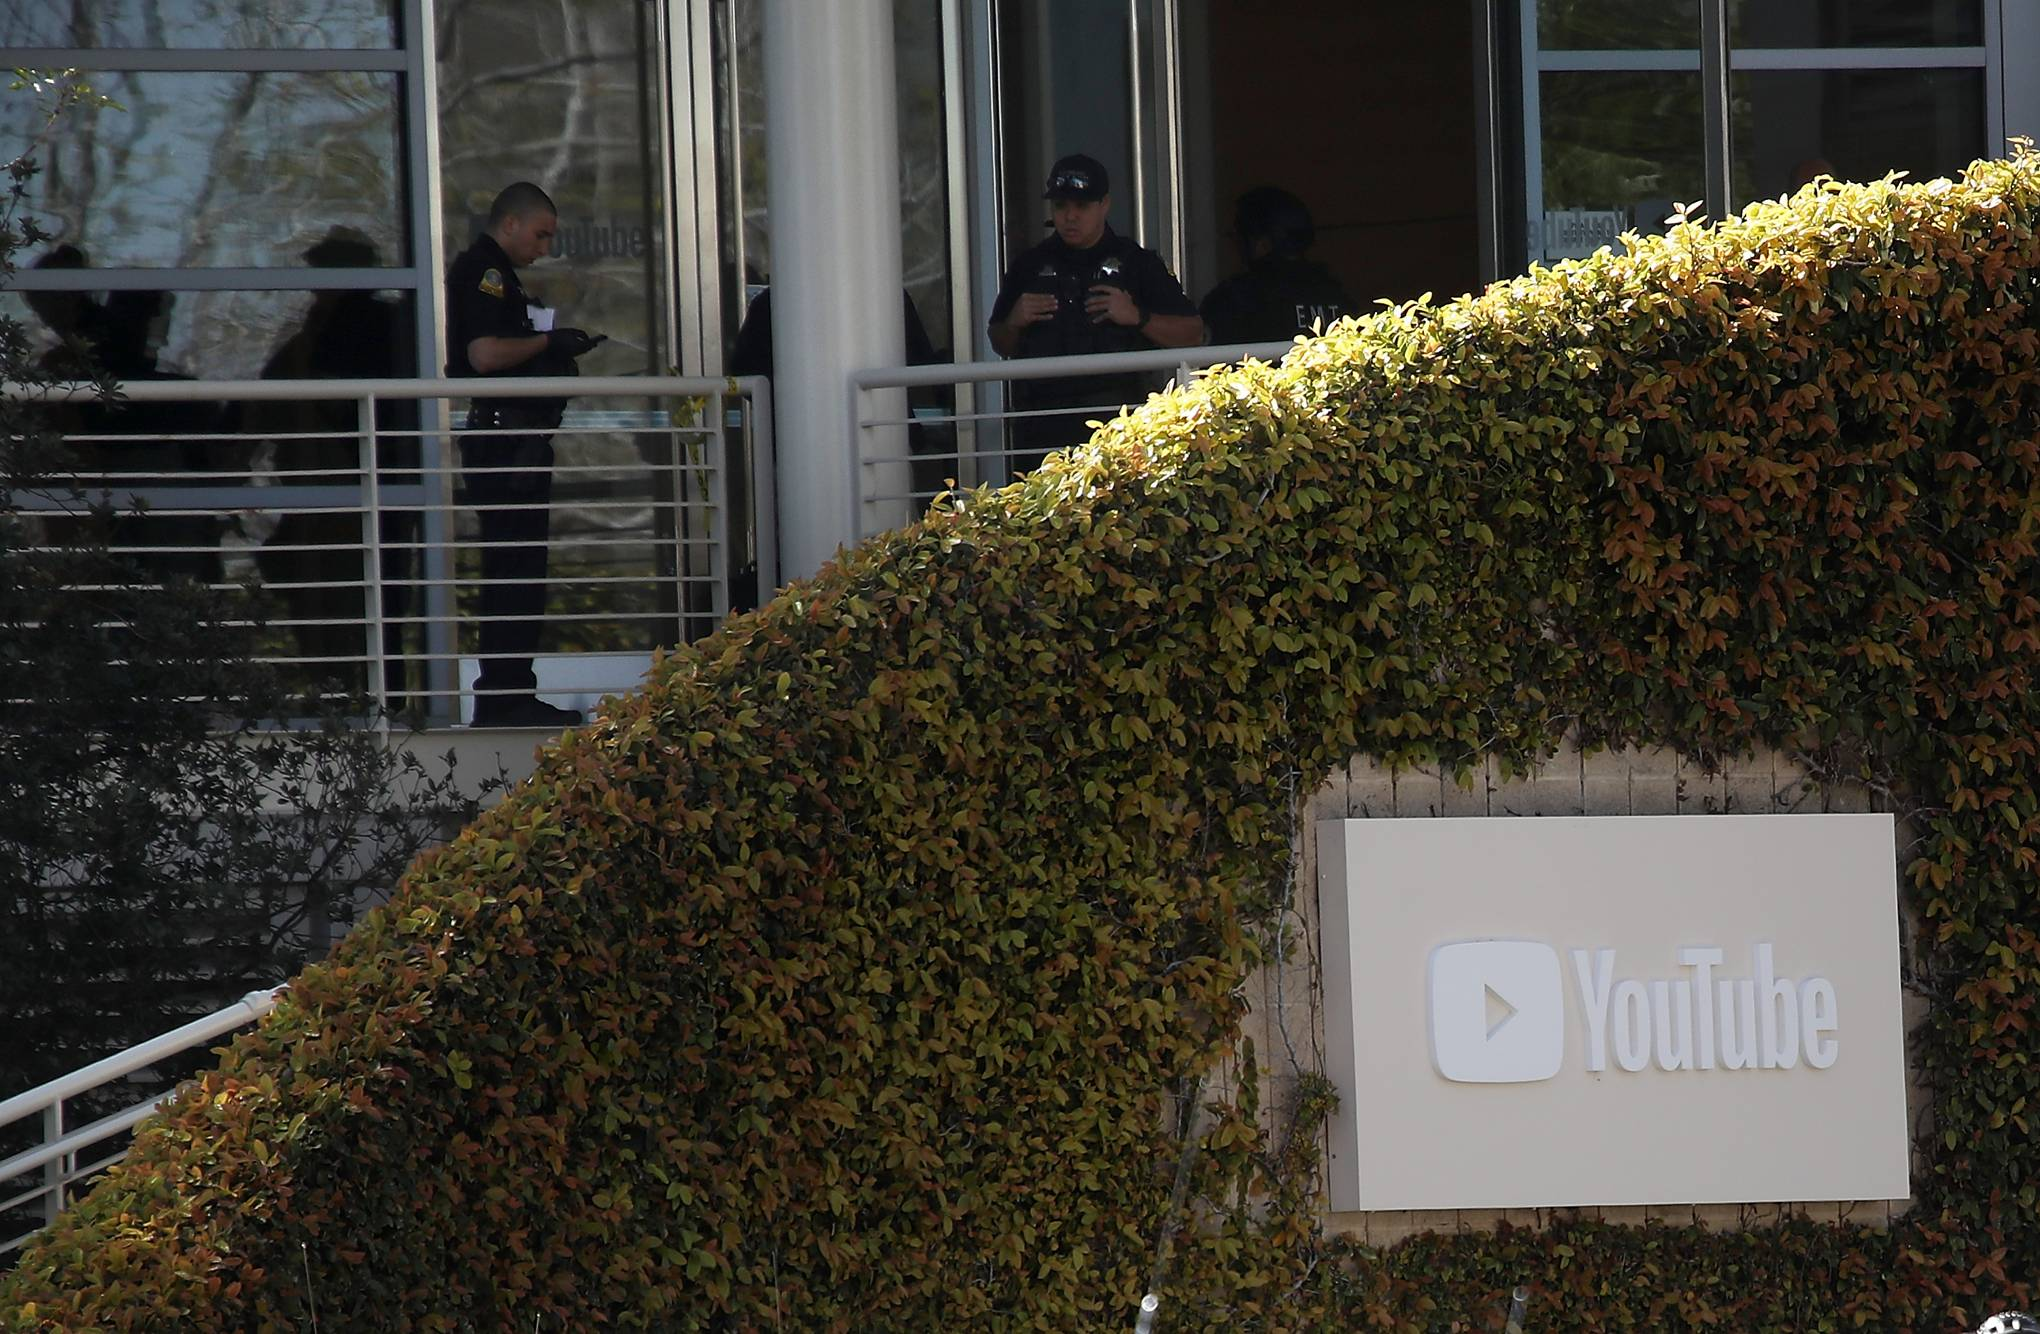 YouTube accused of illegally collecting information about children